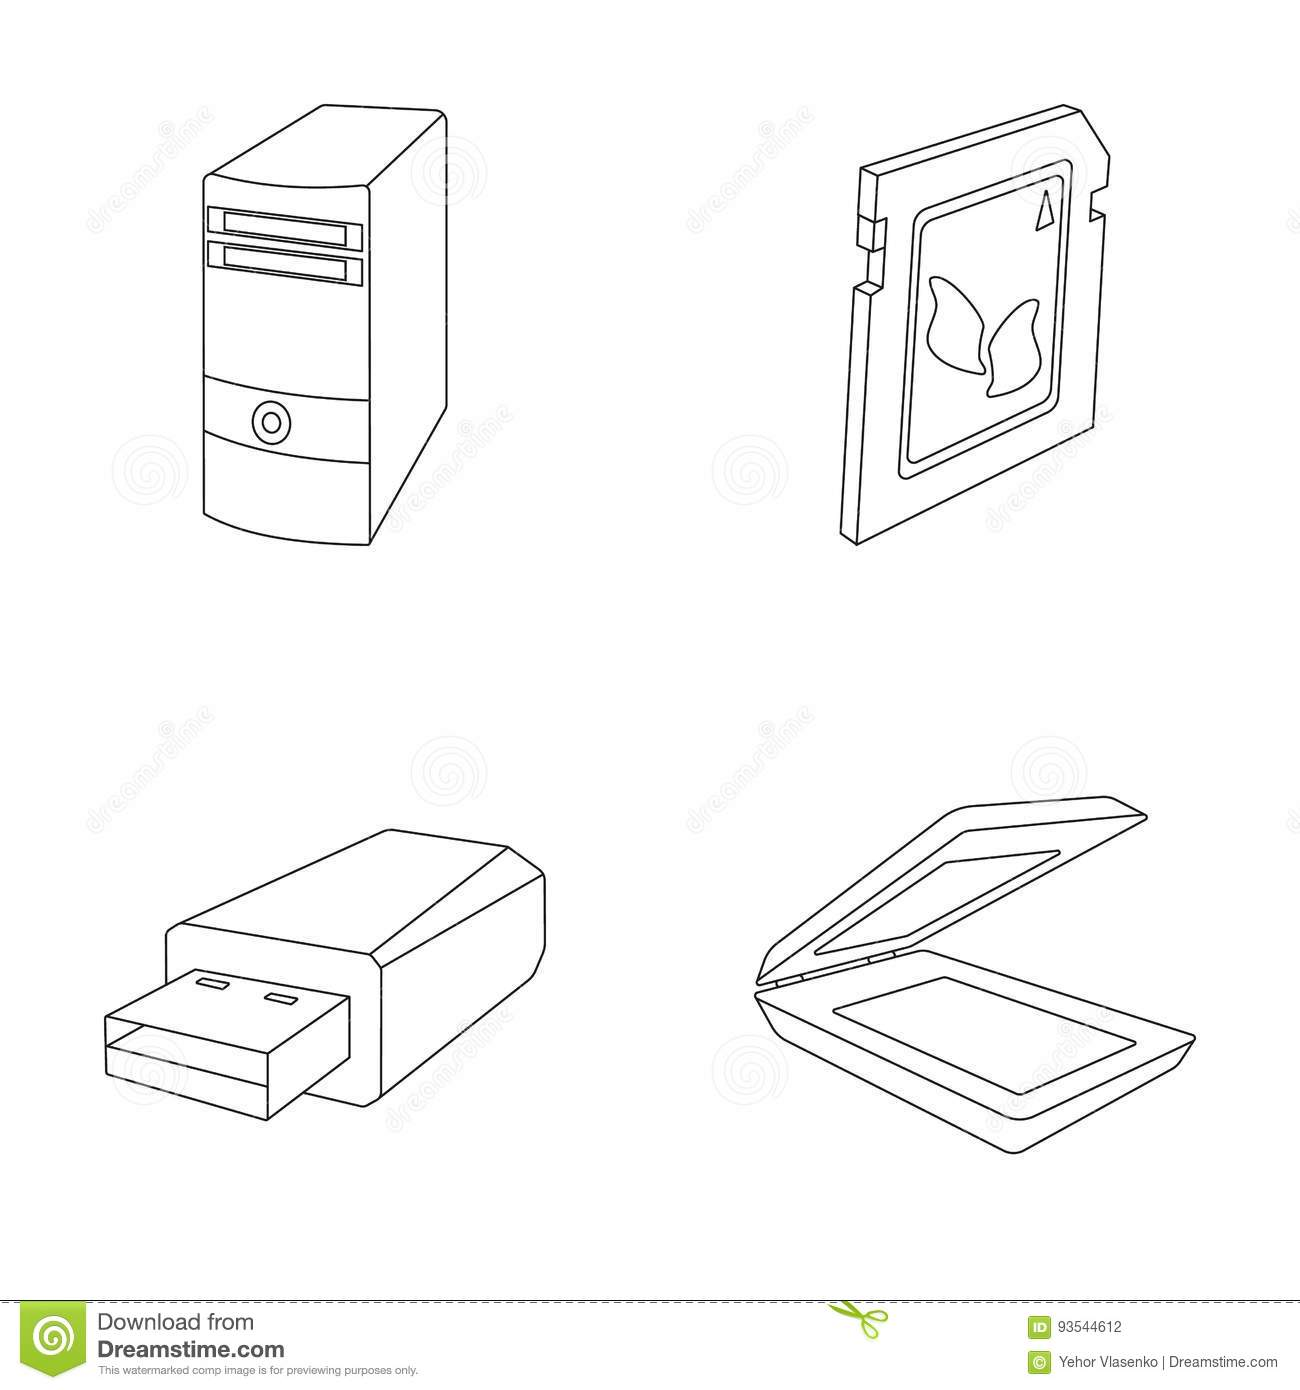 A System Unit, A Flash Drive, A Scanner And A SD Card